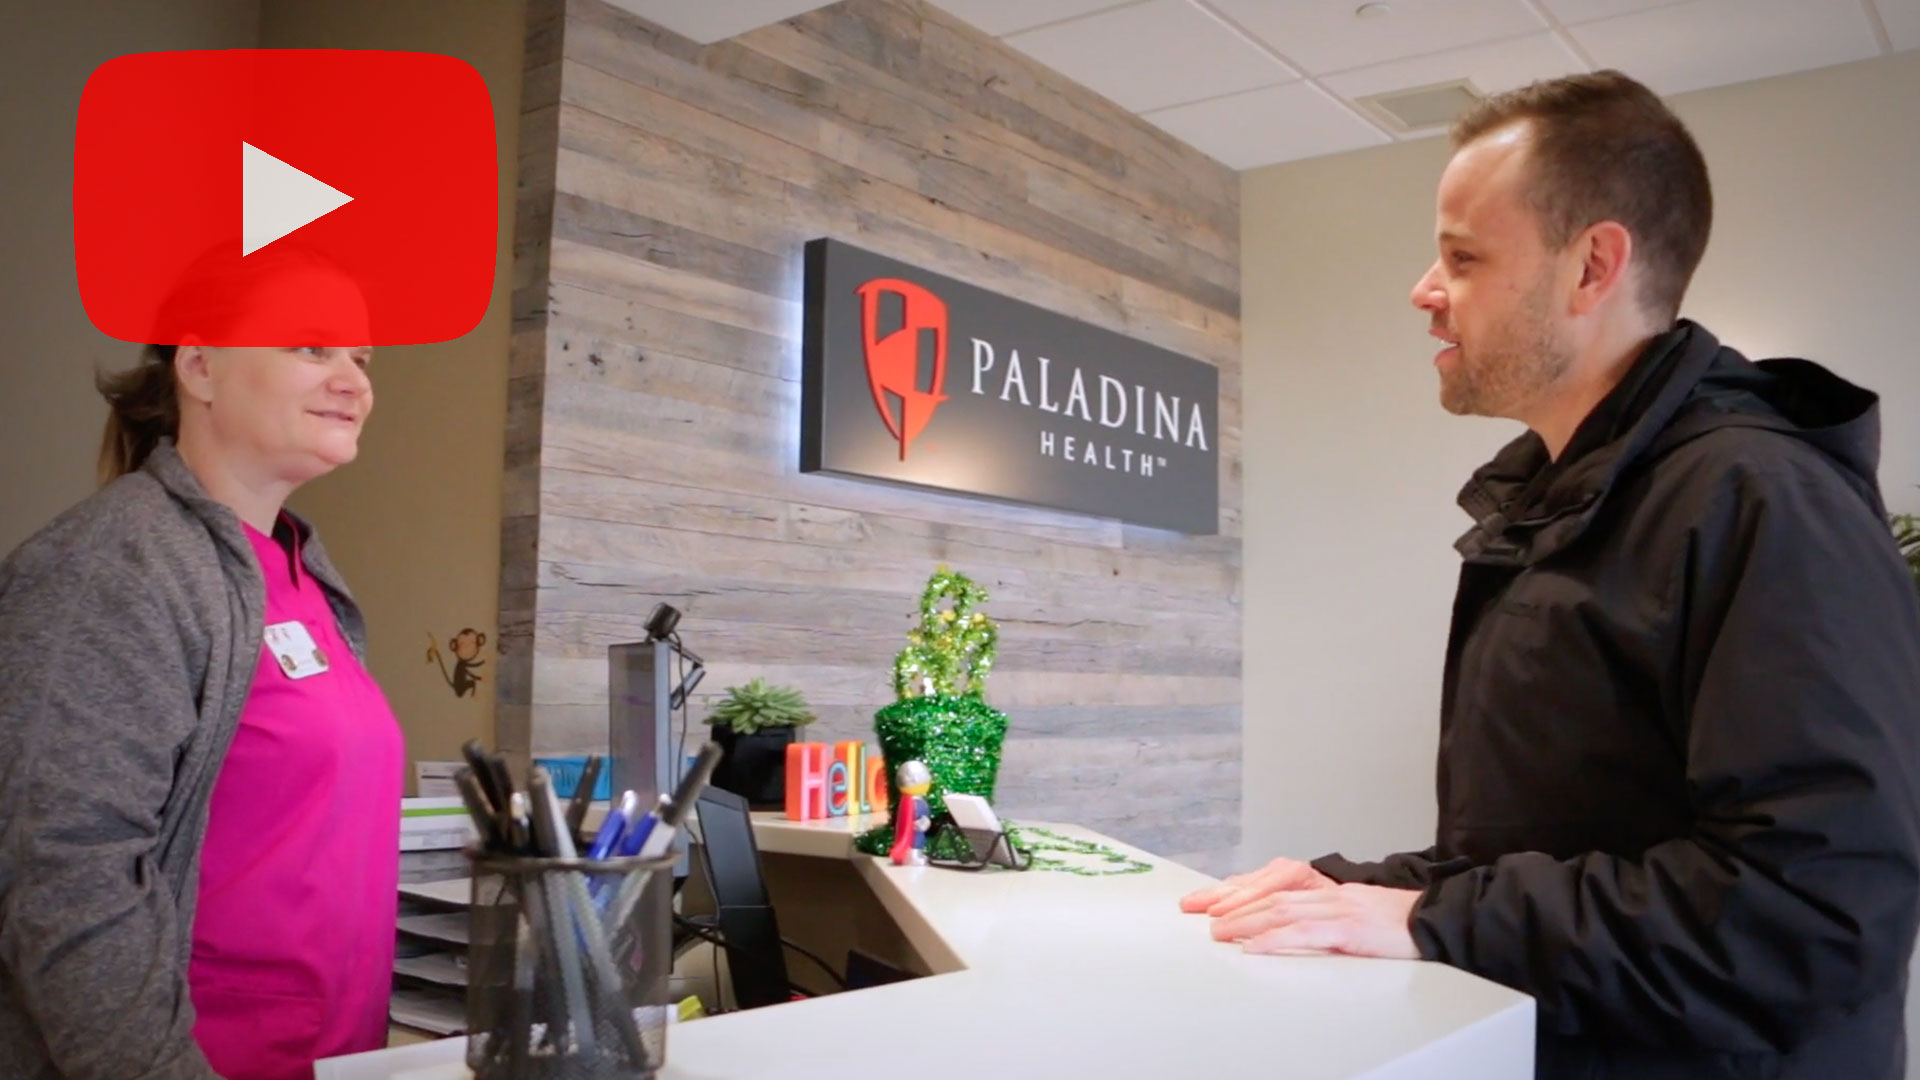 Paladina Health Video Production Portfolio Sample